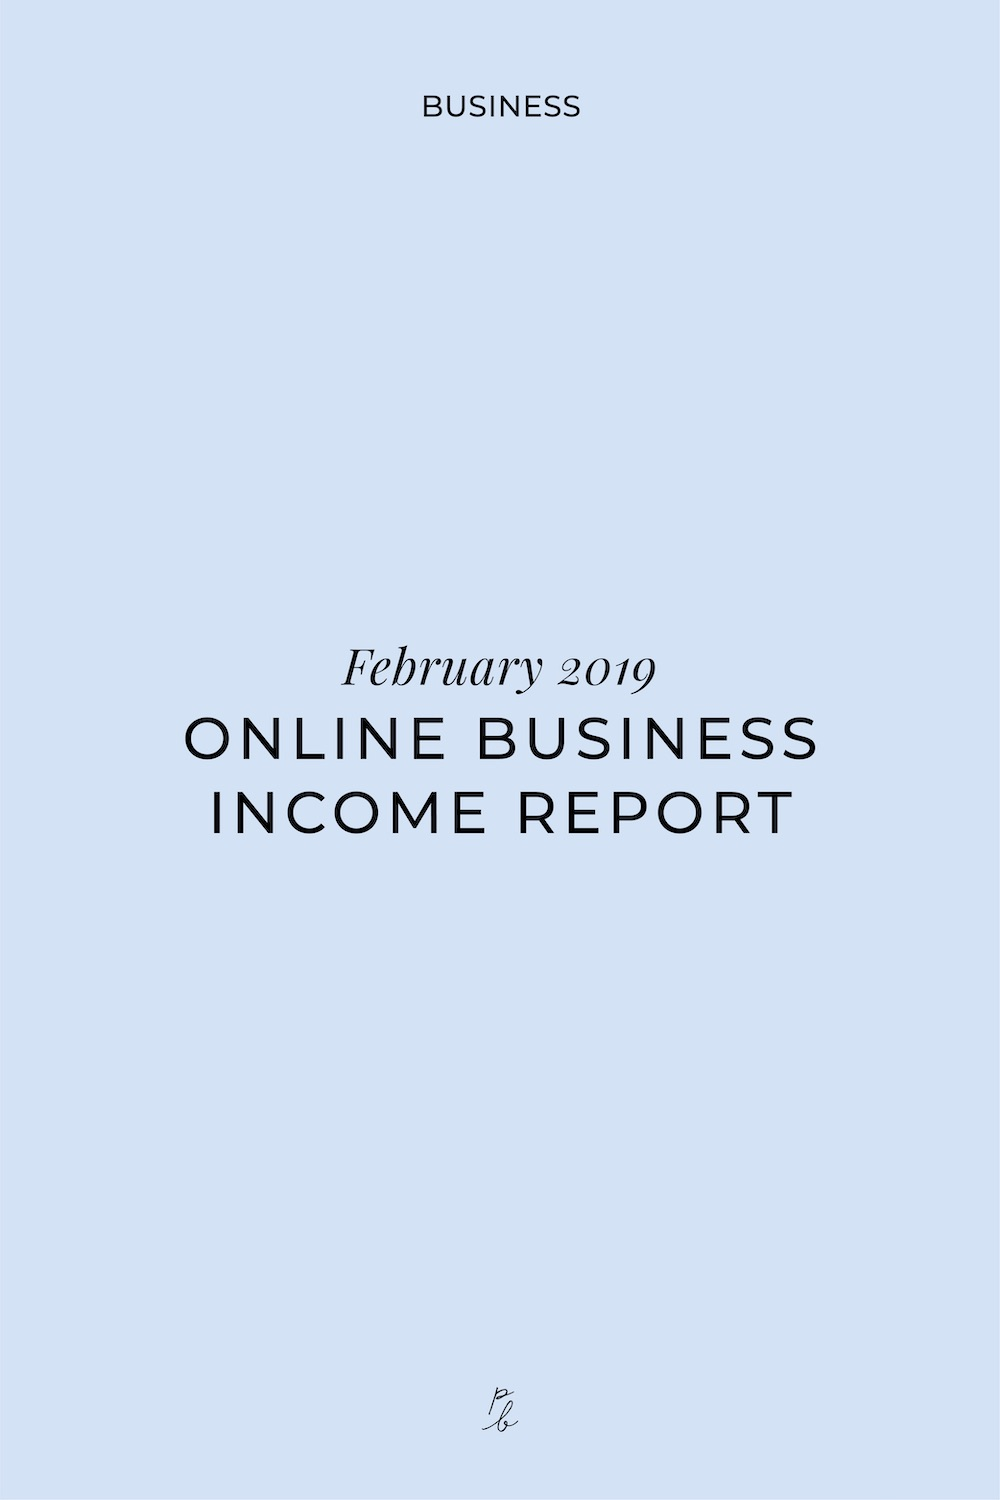 2-Feb 2019 Online Business Income Report.jpg